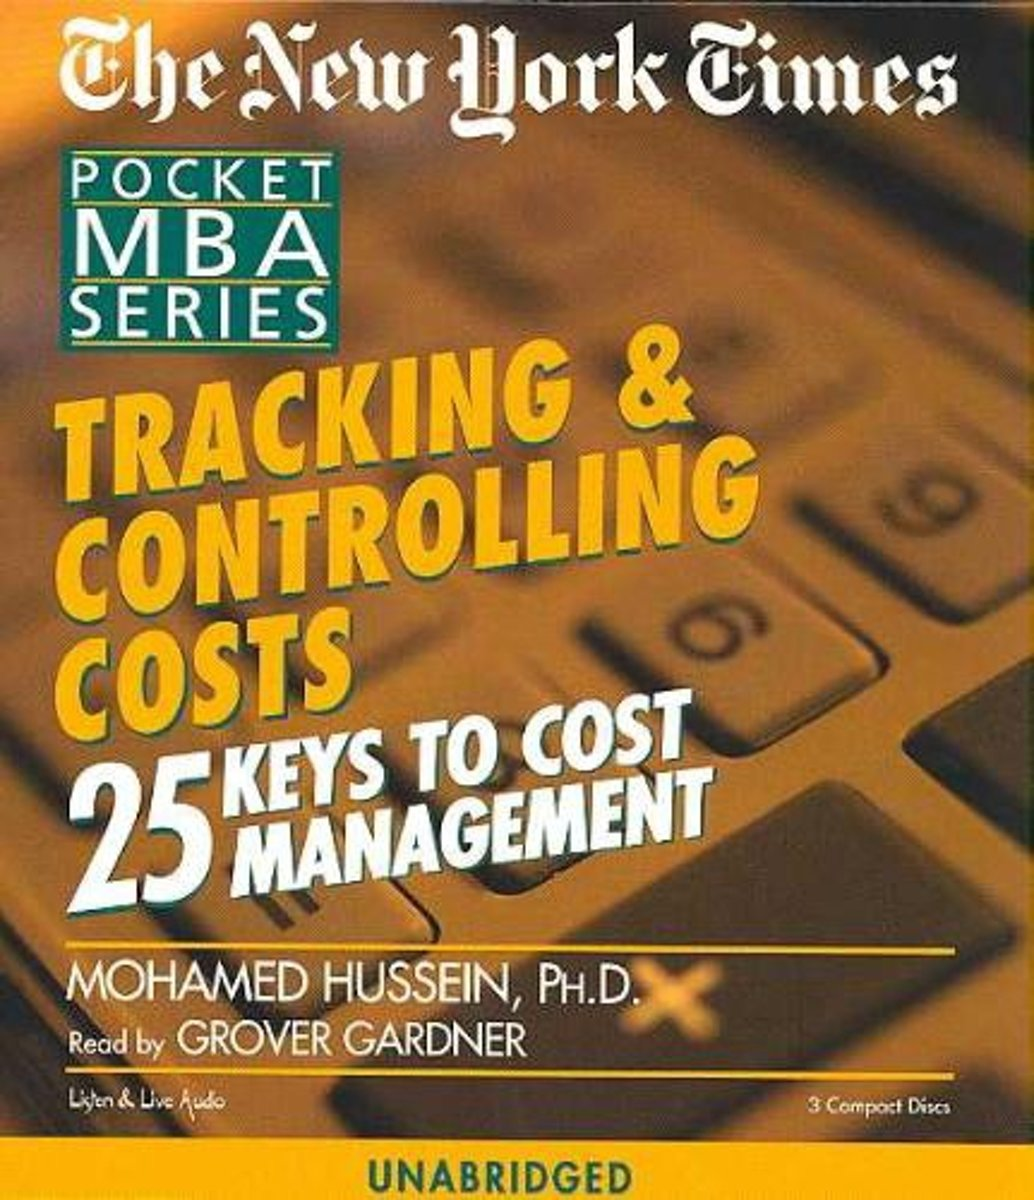 Tracking & Controlling Costs